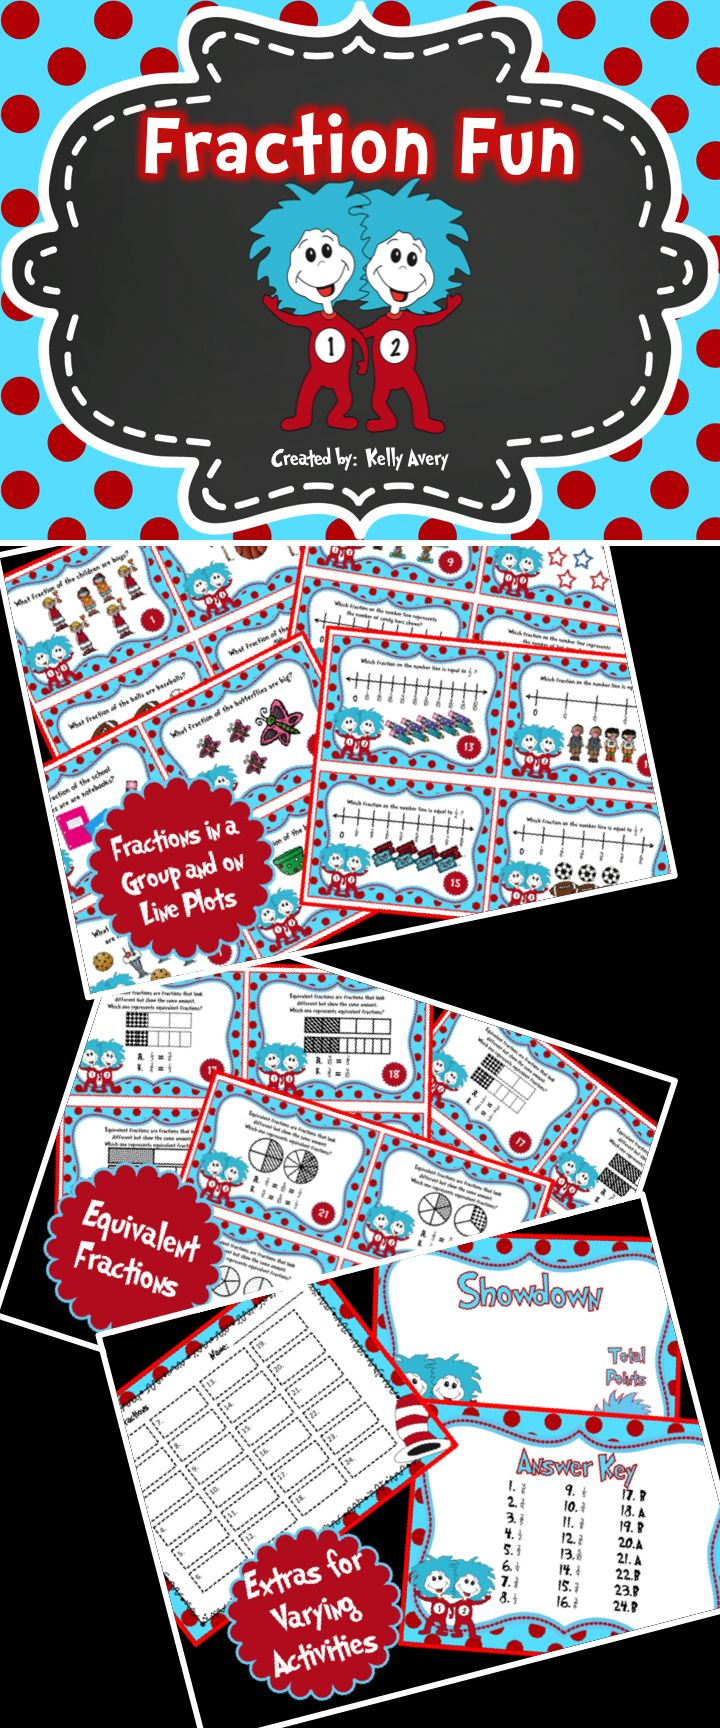 Whether you are wanting to incorporate Dr. Seuss across your curriculum for National Read Across America Day or simply looking for a fun way to offer your students practice for those dreaded standardized tests, these task cards are perfect for aiding your students in grasping the abstract concept of fractions.